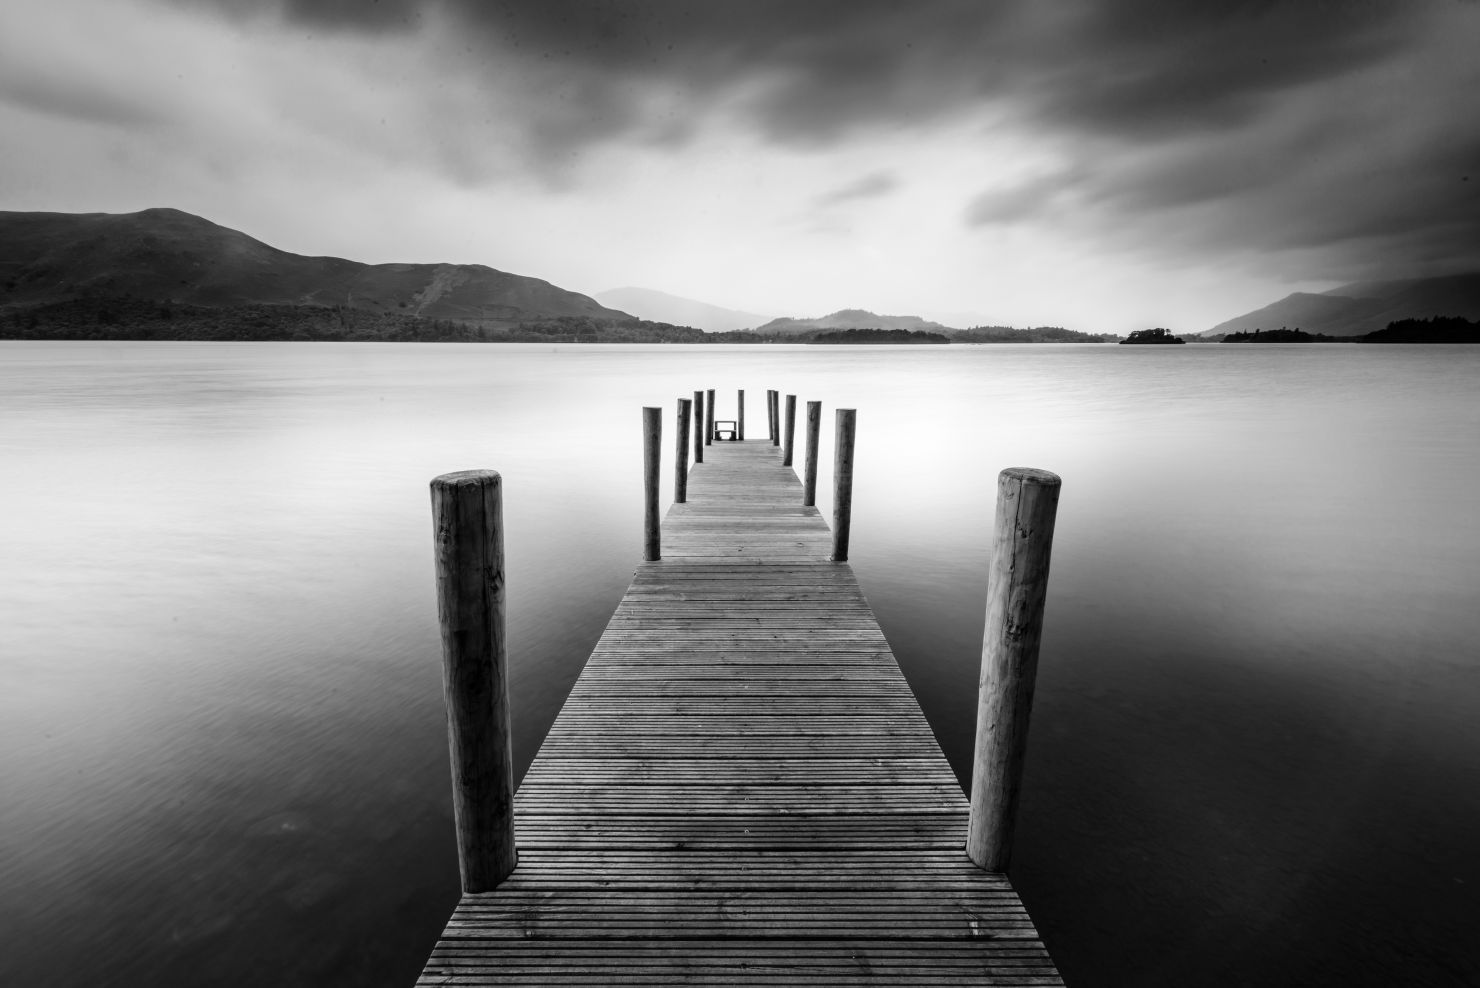 Jetty by the lake